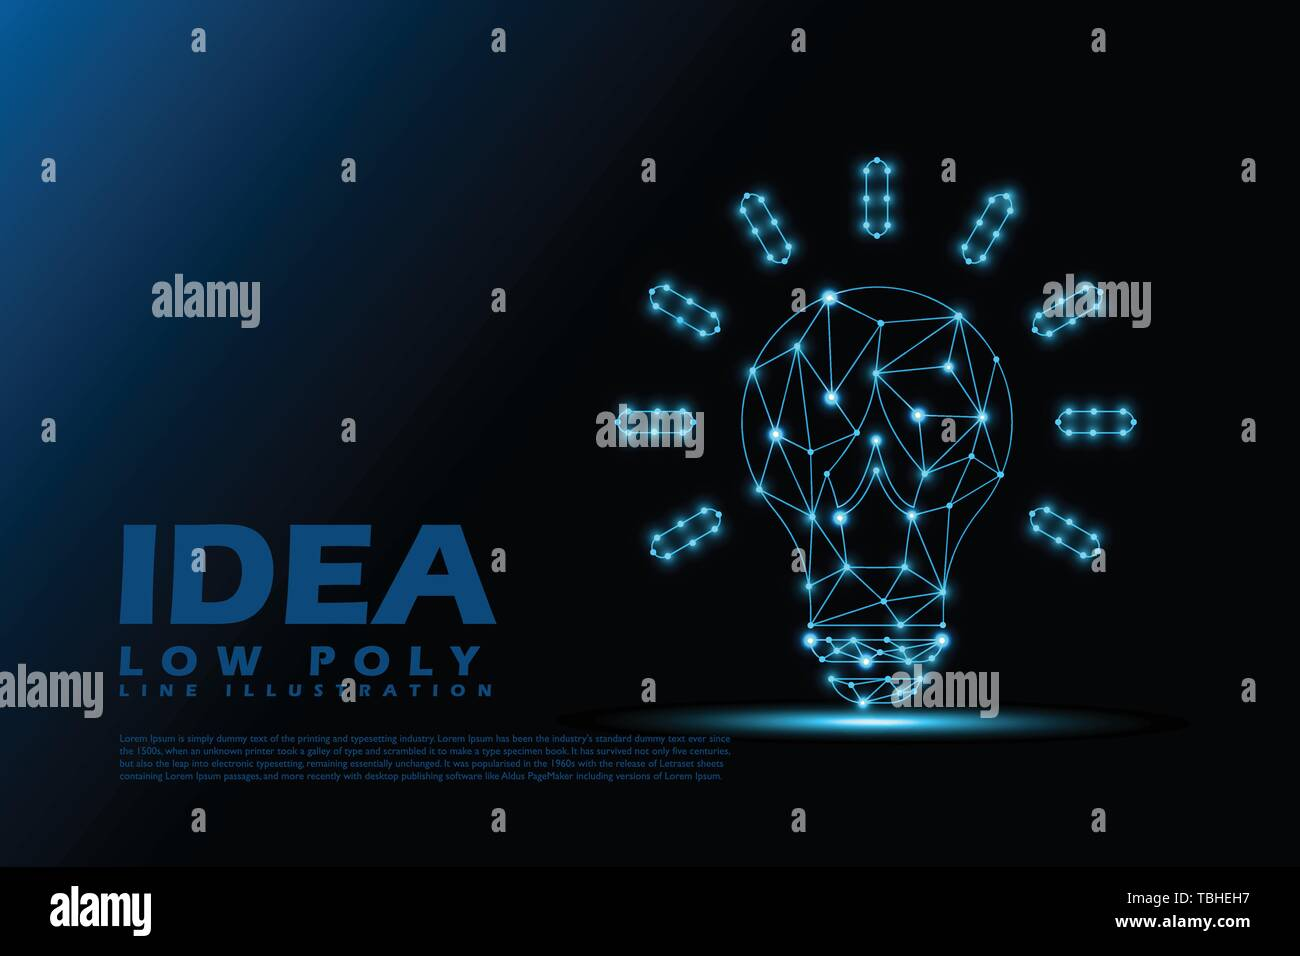 Low Poly Light Bulb Stock Photos & Low Poly Light Bulb Stock Images